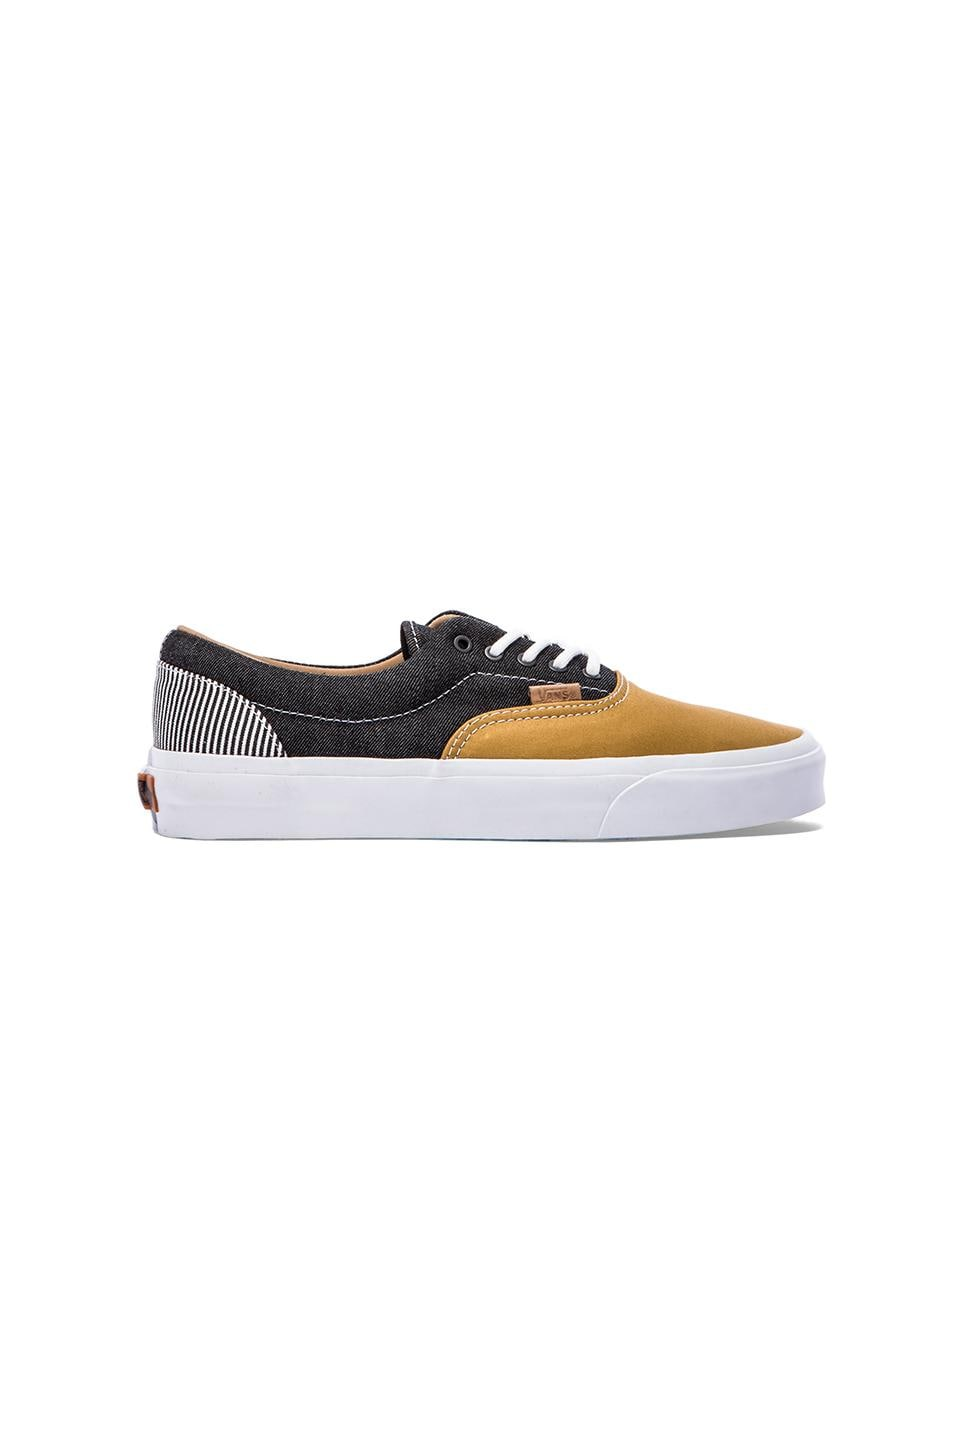 Vans California Era in Stripes & Honey Mustard